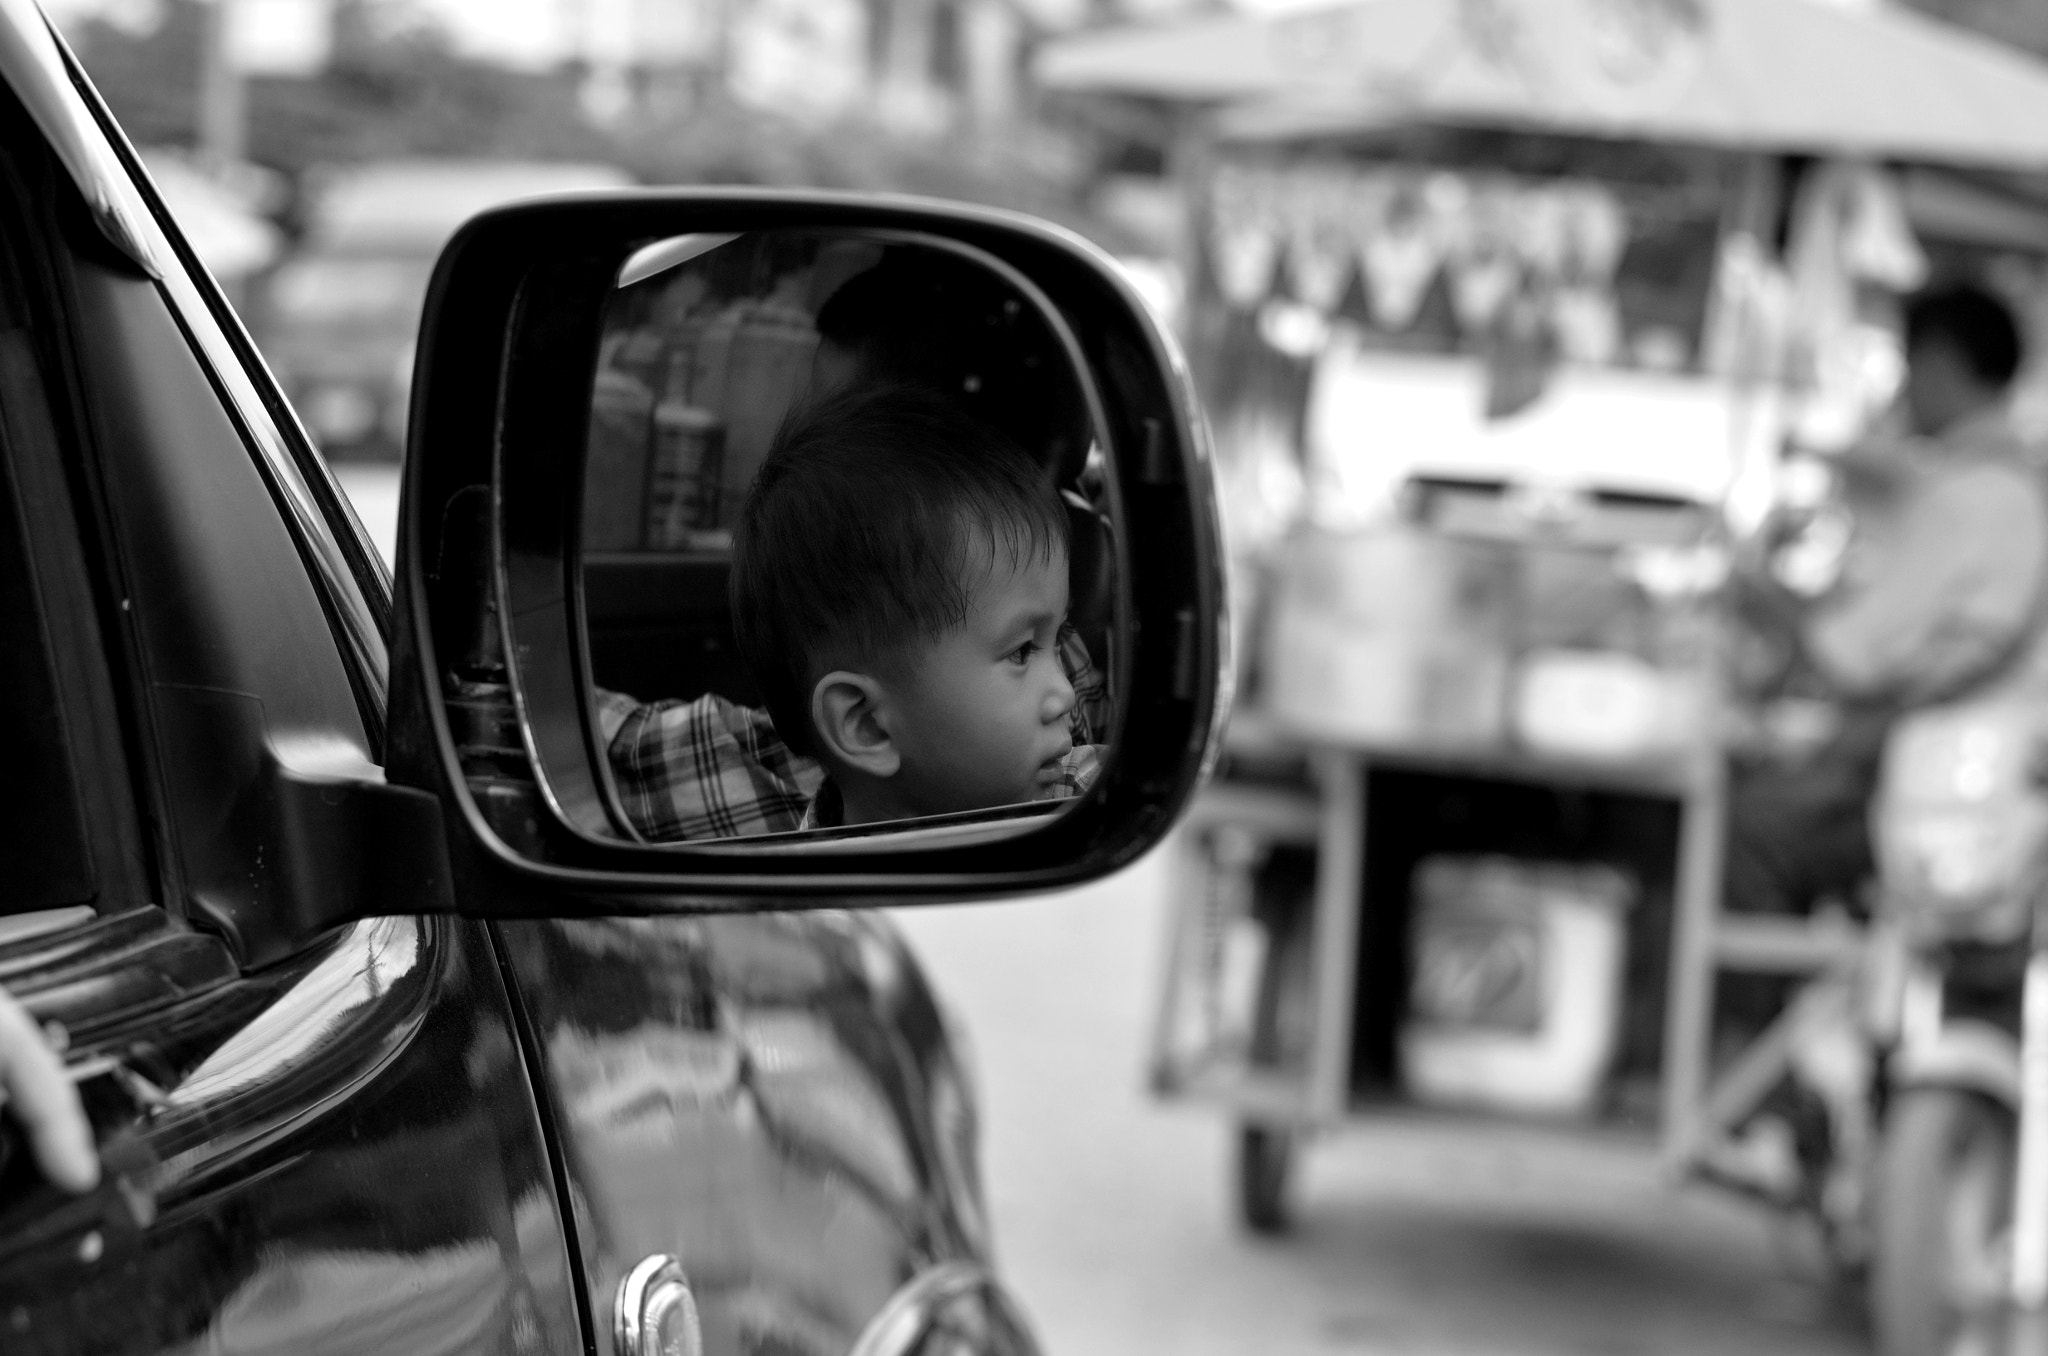 Photograph Mirror by Charlie HOANG on 500px